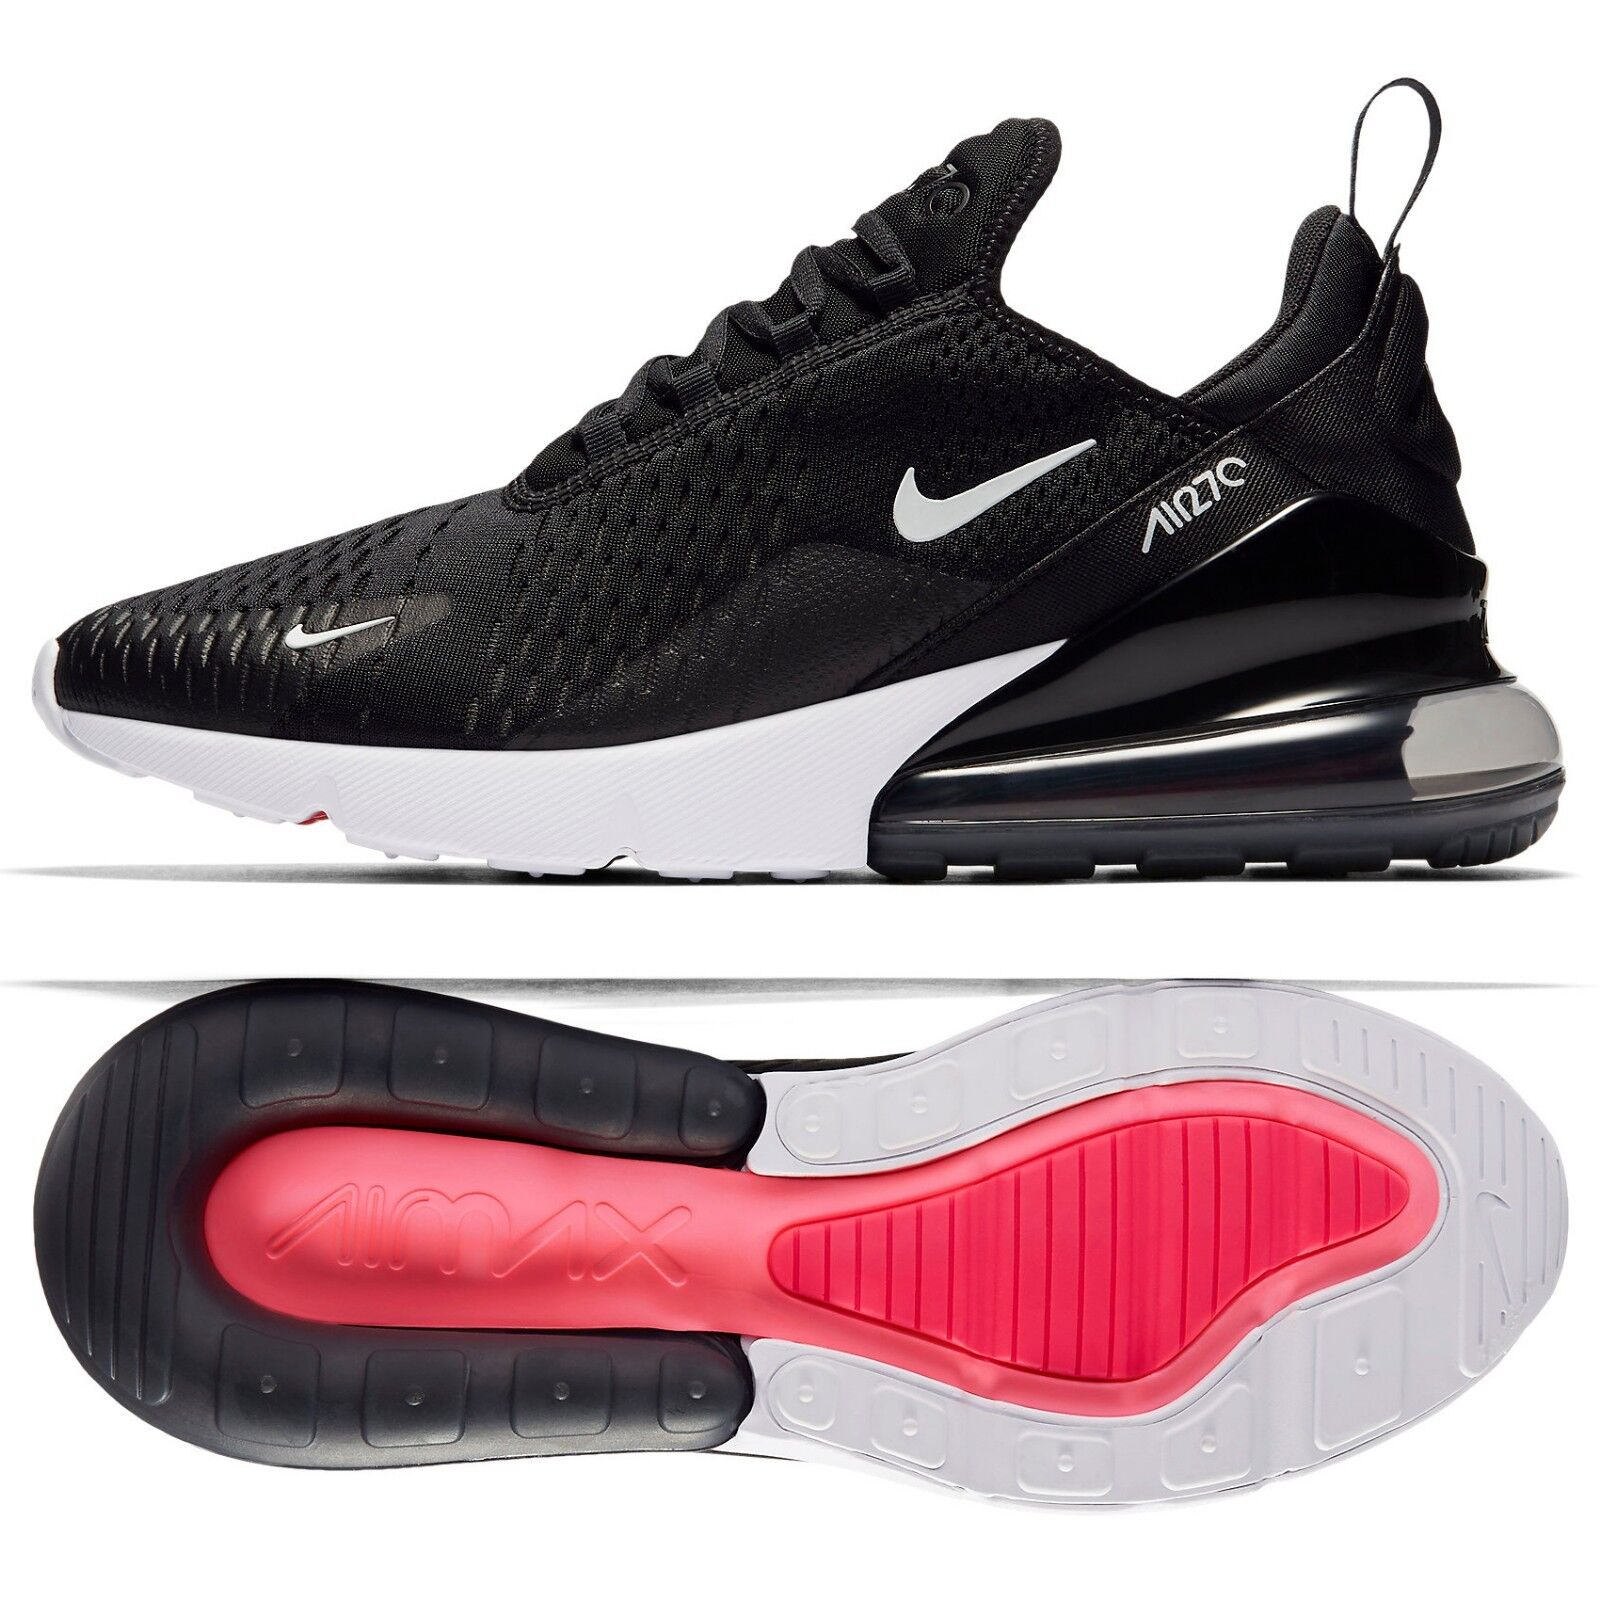 Nike Air Max 270 AH8050-002 Black Black/Anthracite/White/Red Men's Shoes Sz 12